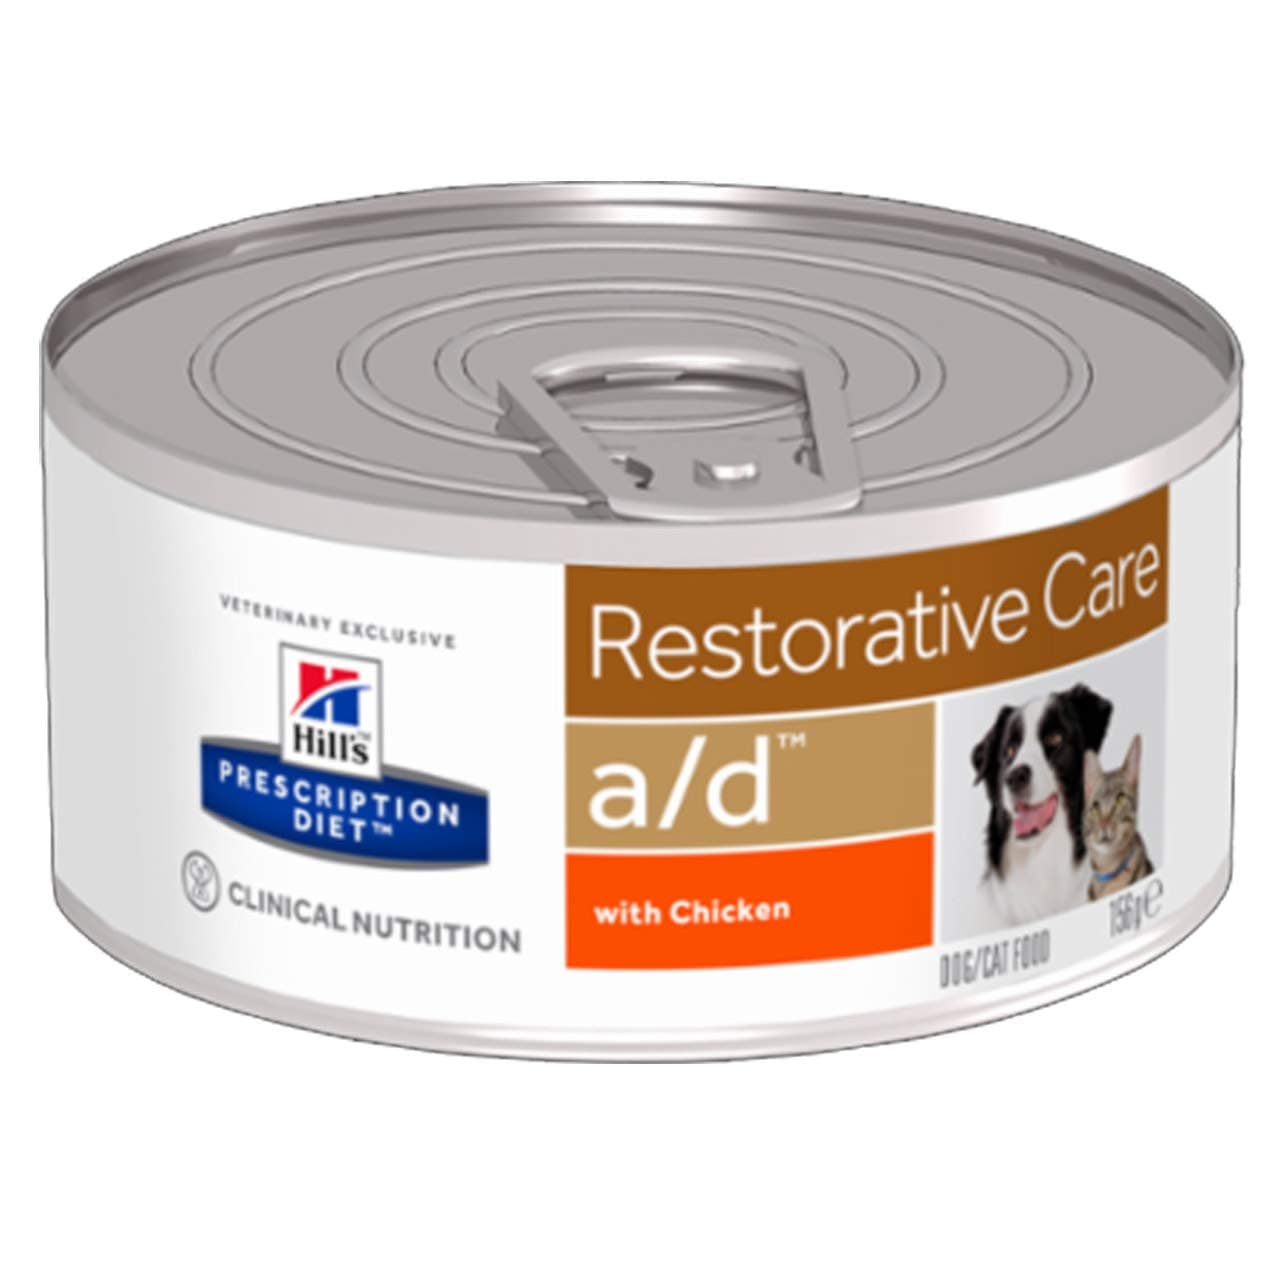 Hill's Prescription Diet Dog&Cat Can a/d - 0.156кг.